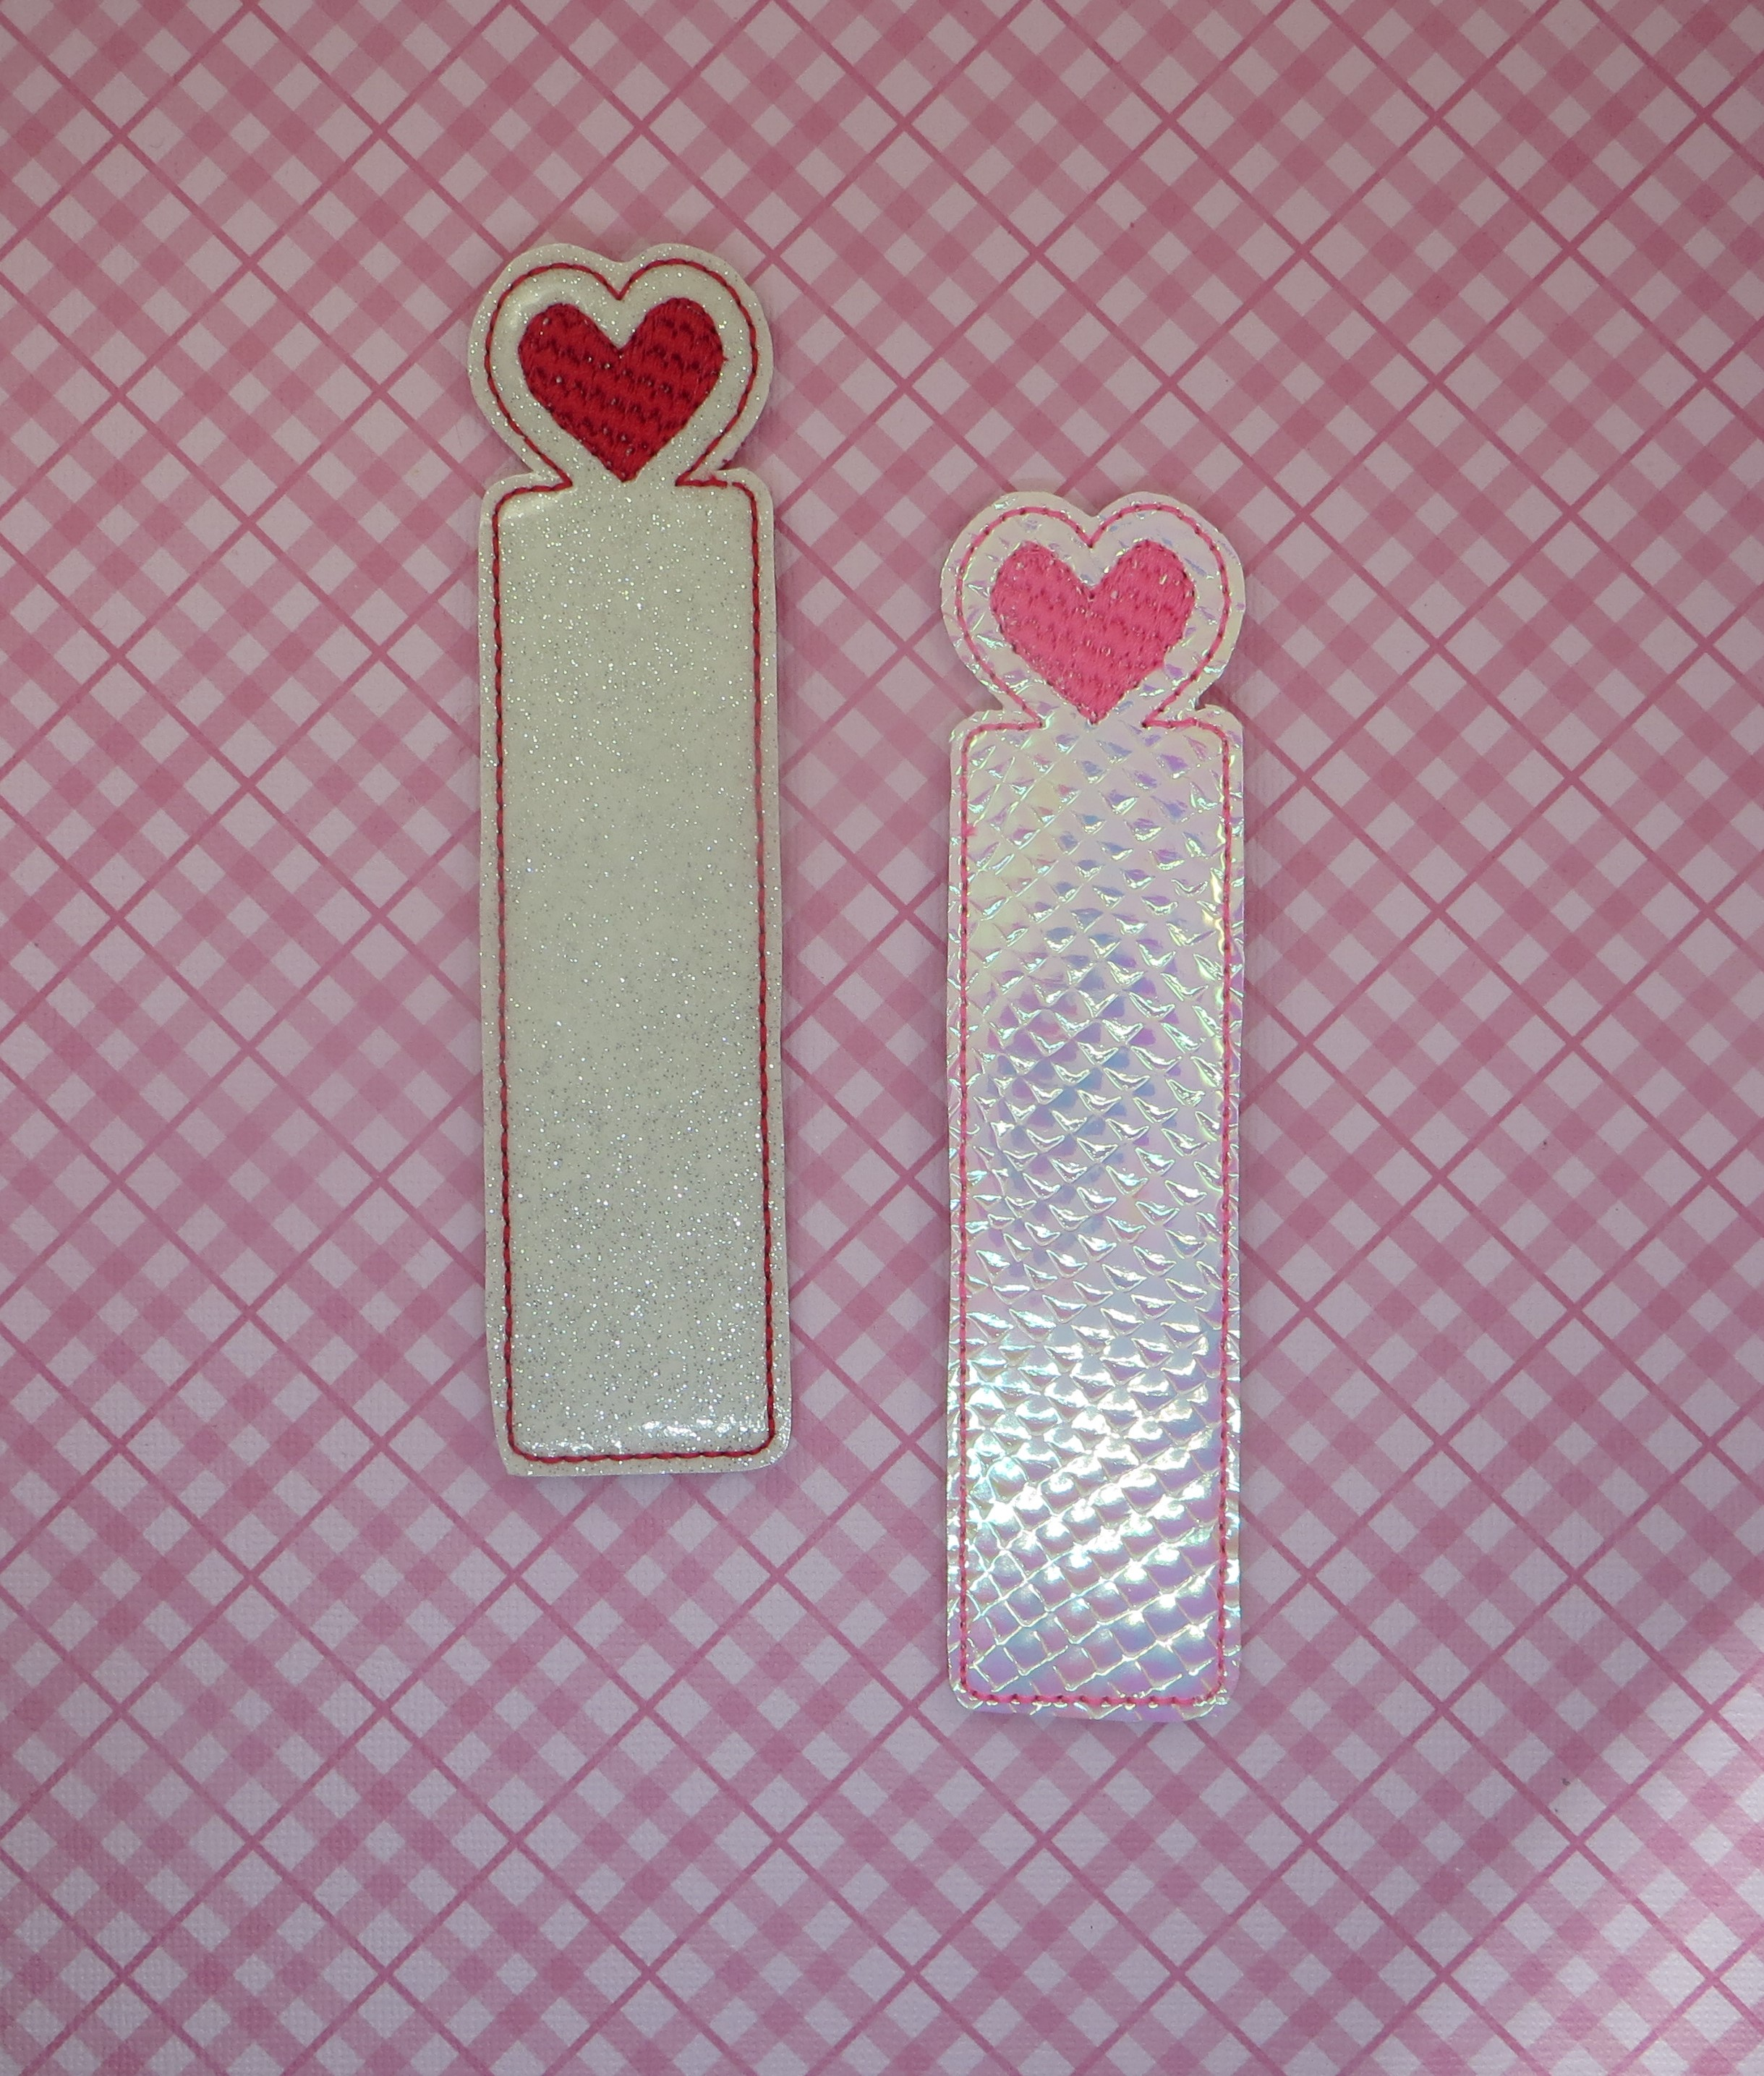 Heart Bookmark Embroidery Design